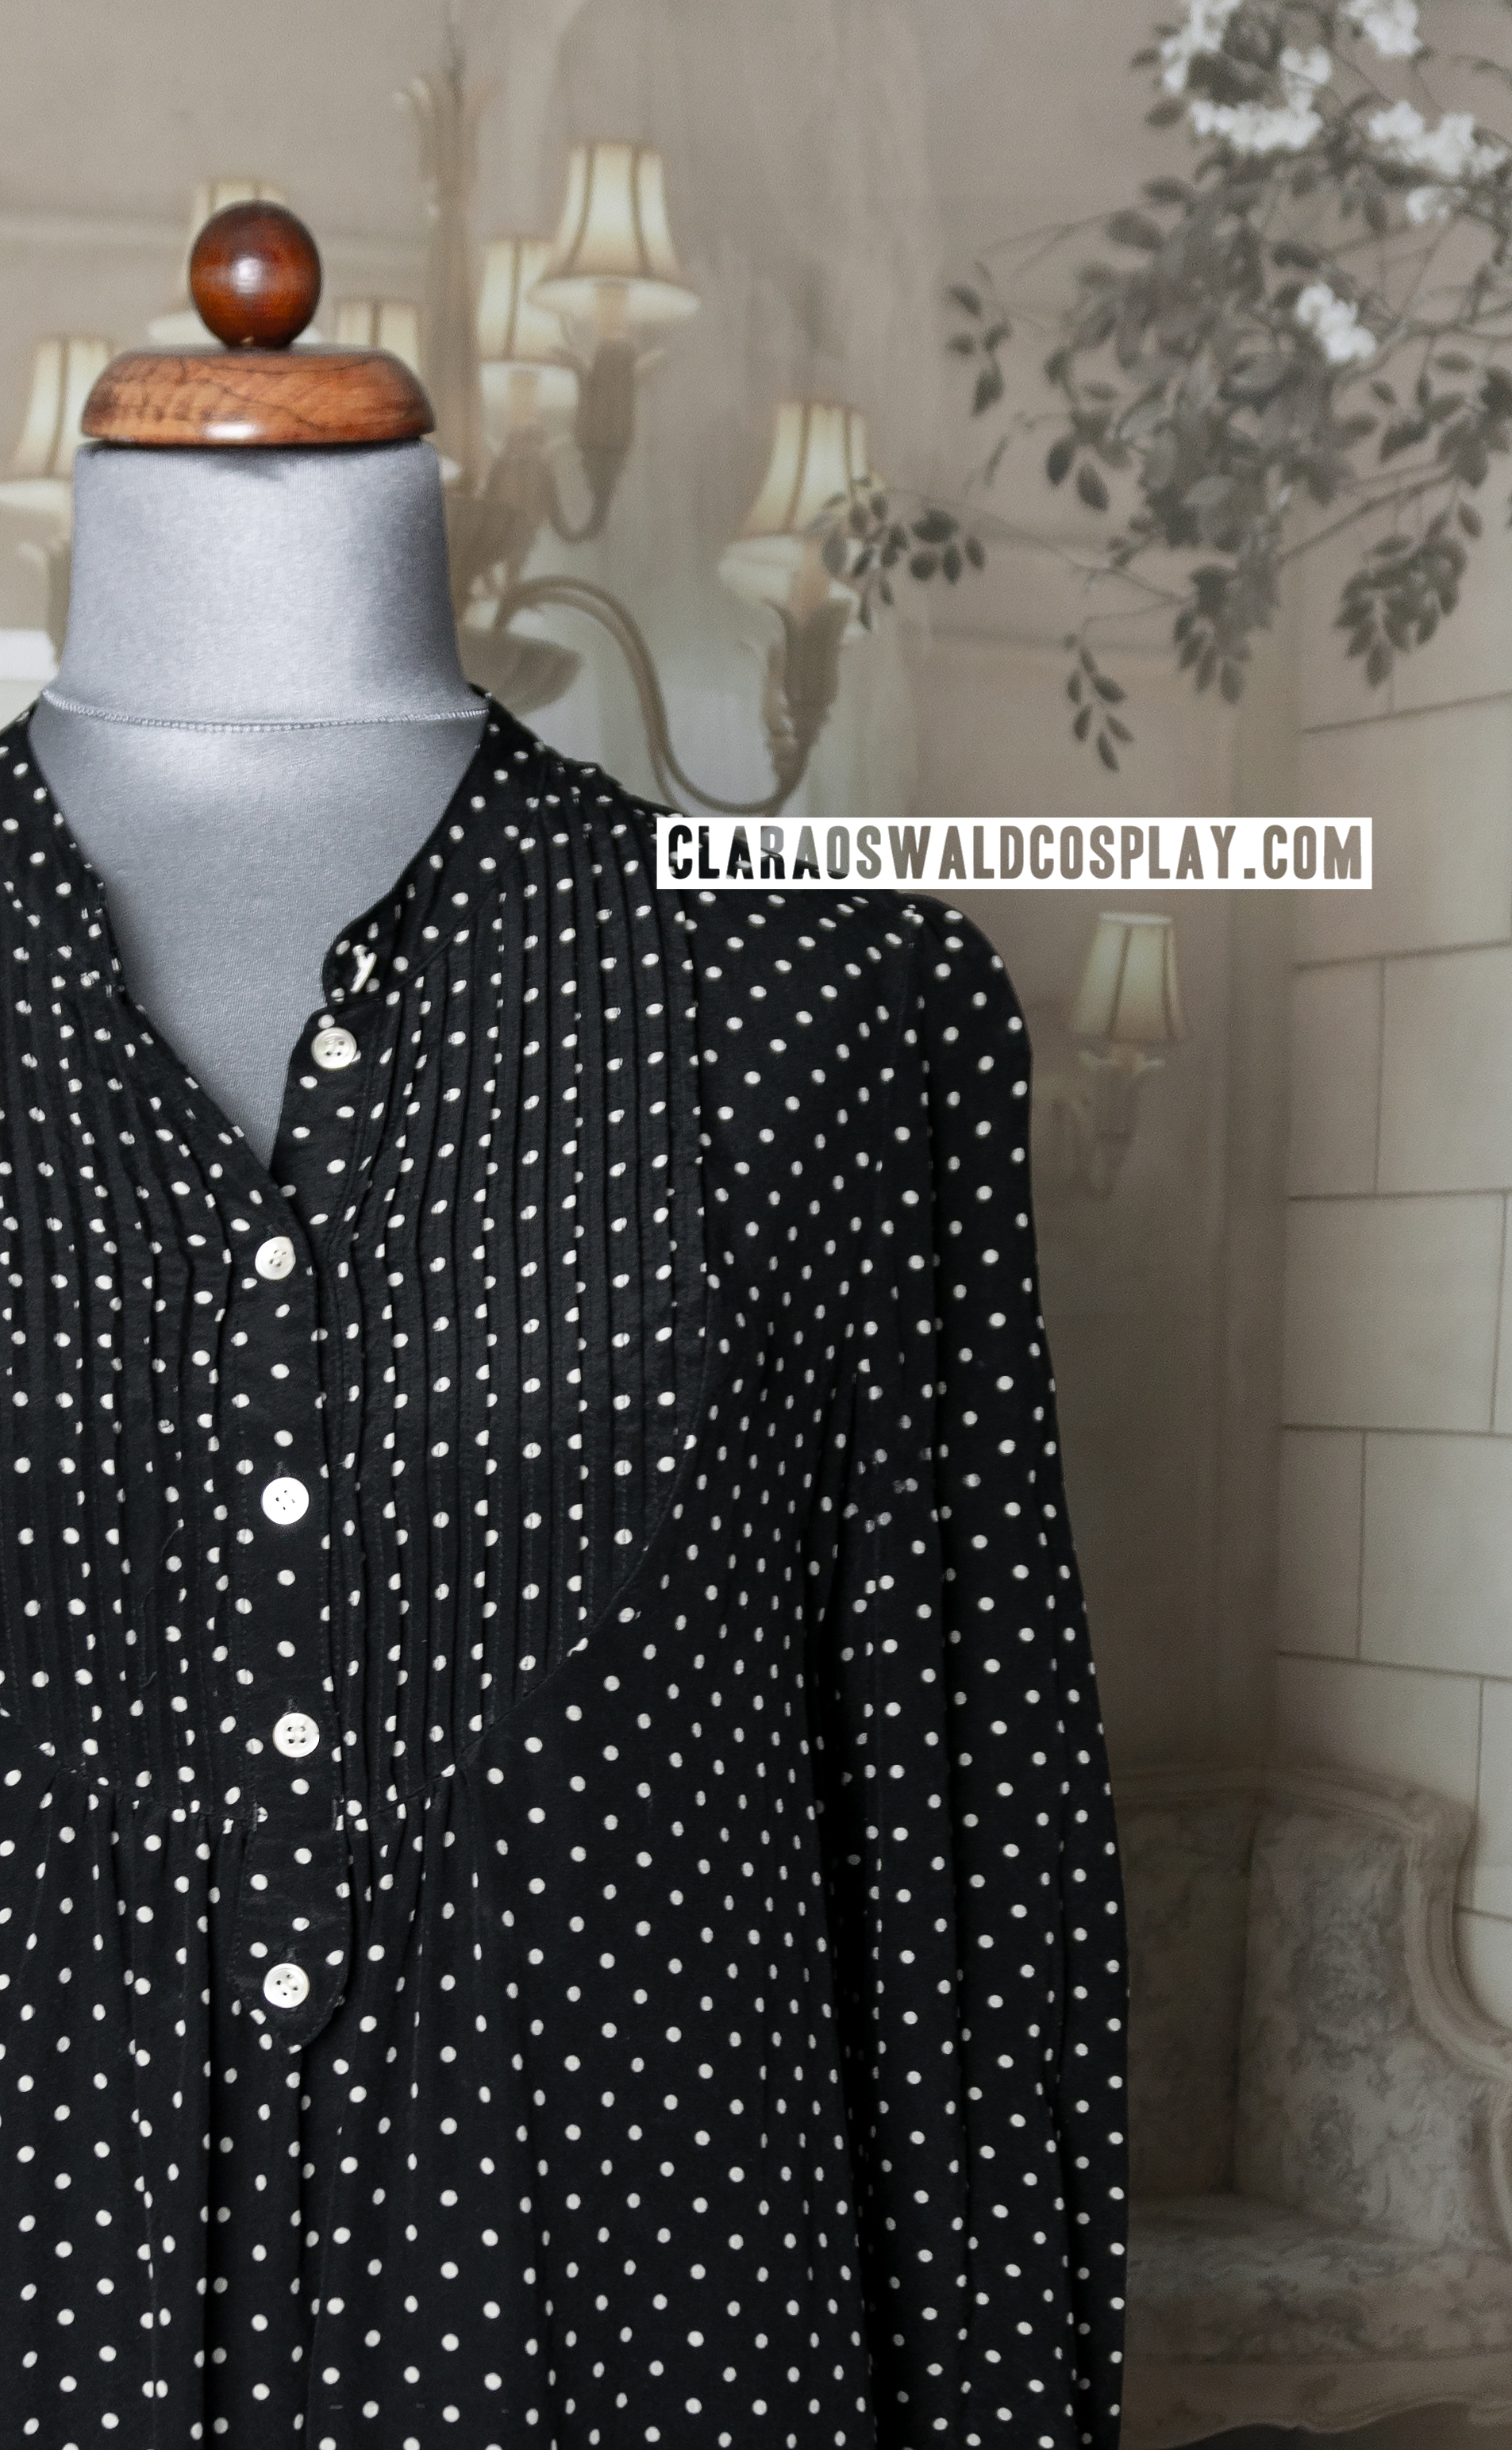 A closer look at the polka dots of Clara Oswald's Jigsaw Blouse